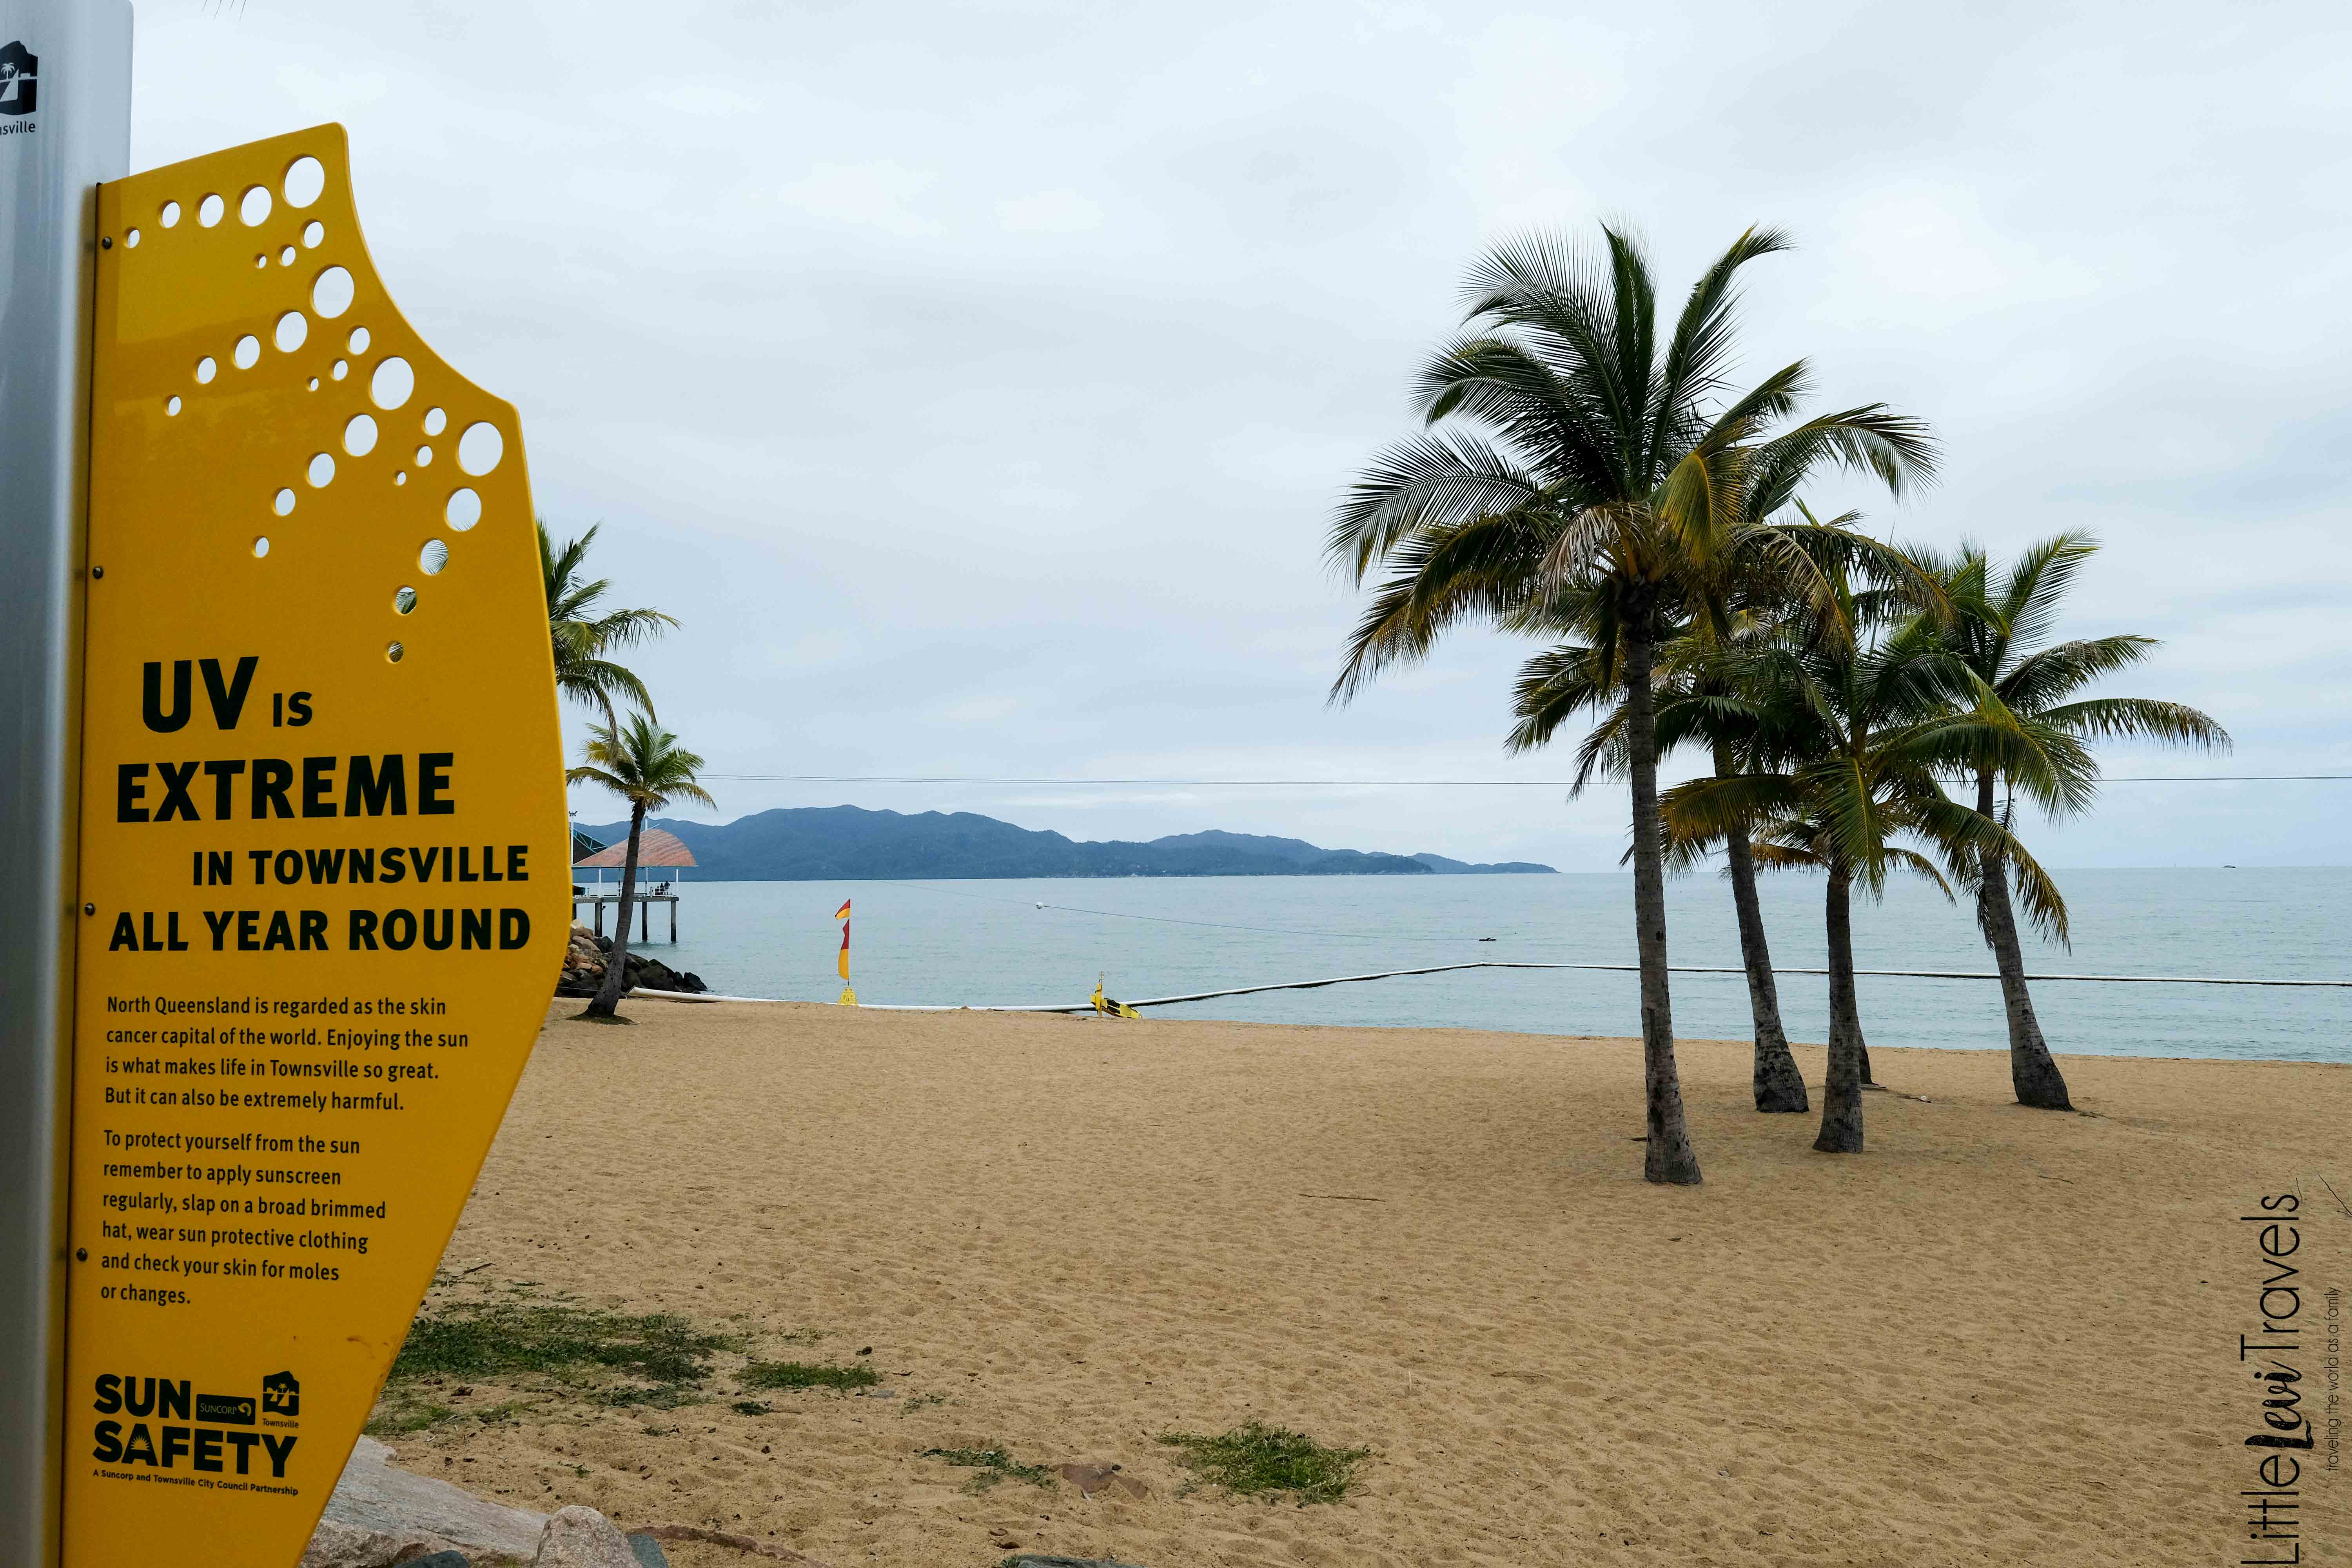 How to get rid of bedbugs (Airlie Beach to Townsville)